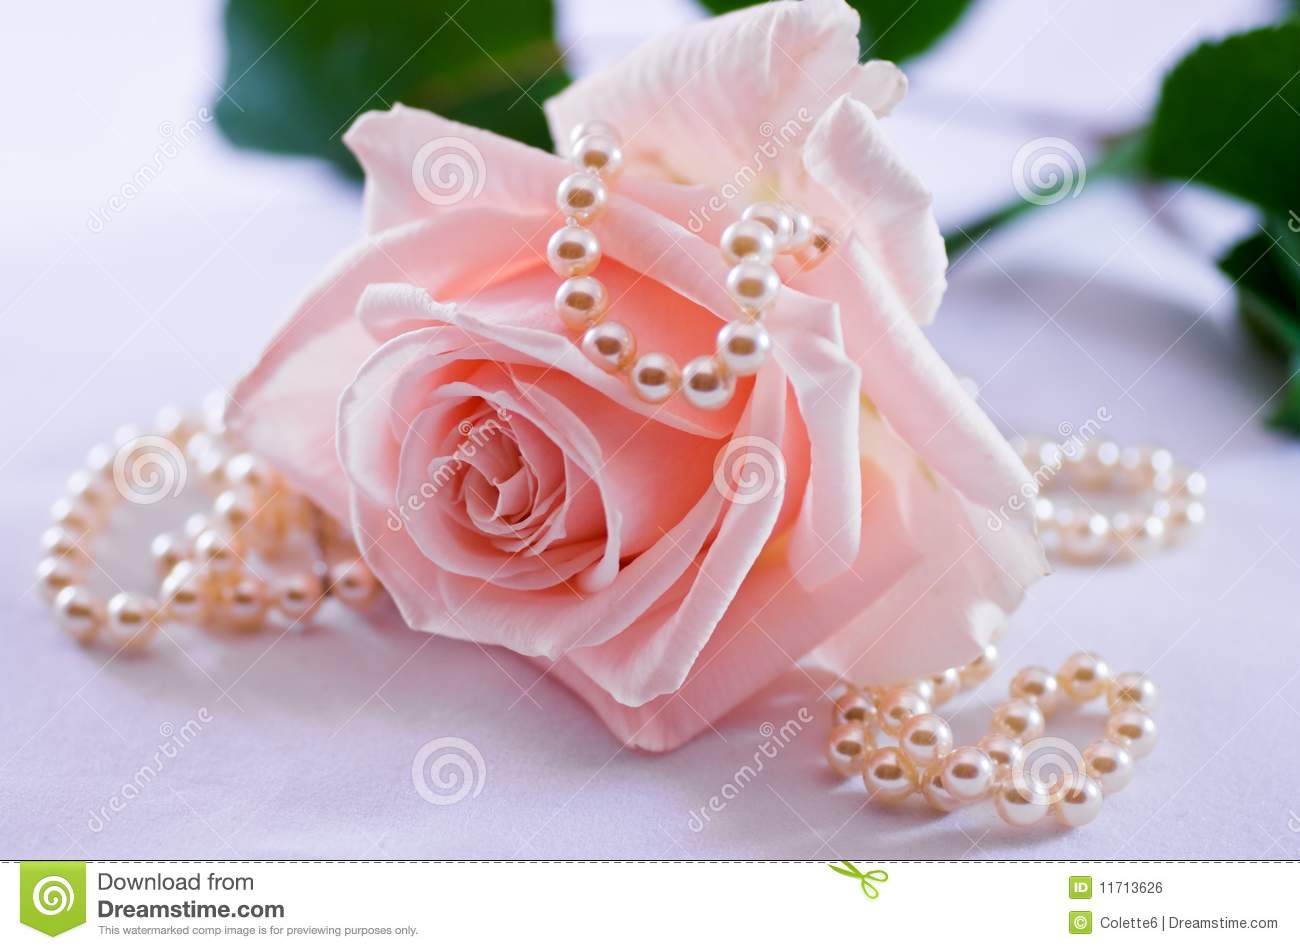 Pearl necklace and soft pink rose